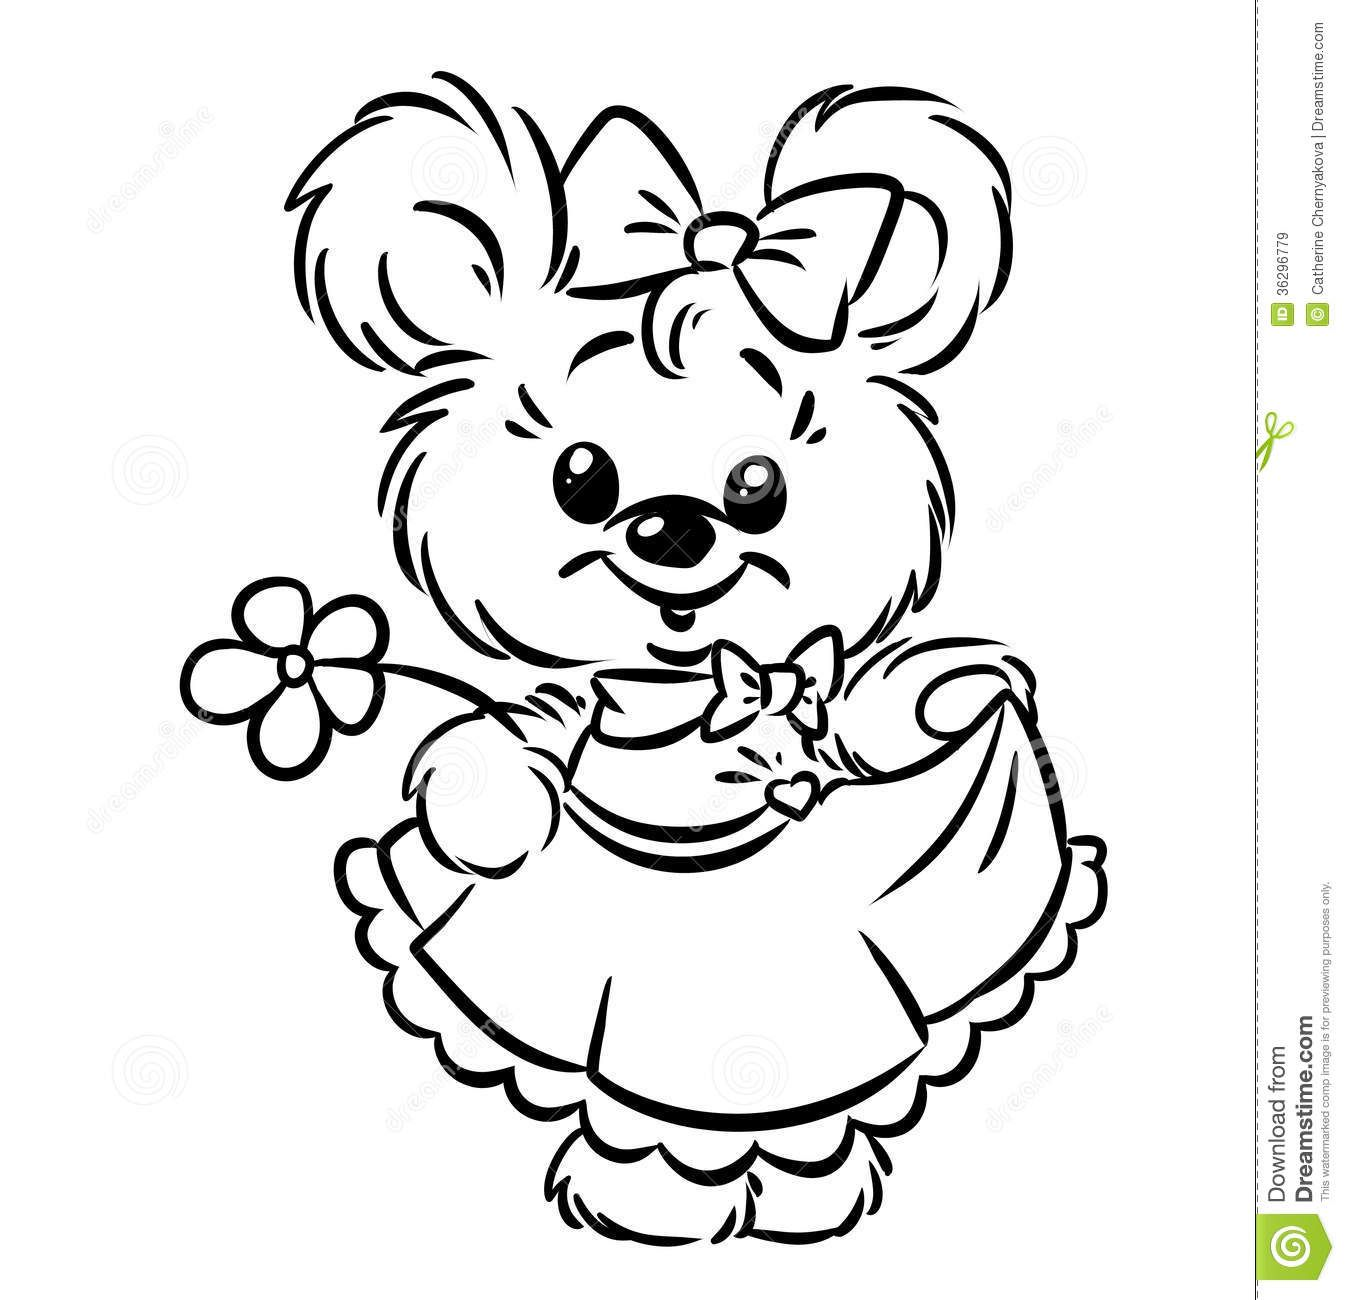 1345x1300 Royalty Free Stock Images Bear Girl Flower Coloring Pages Image